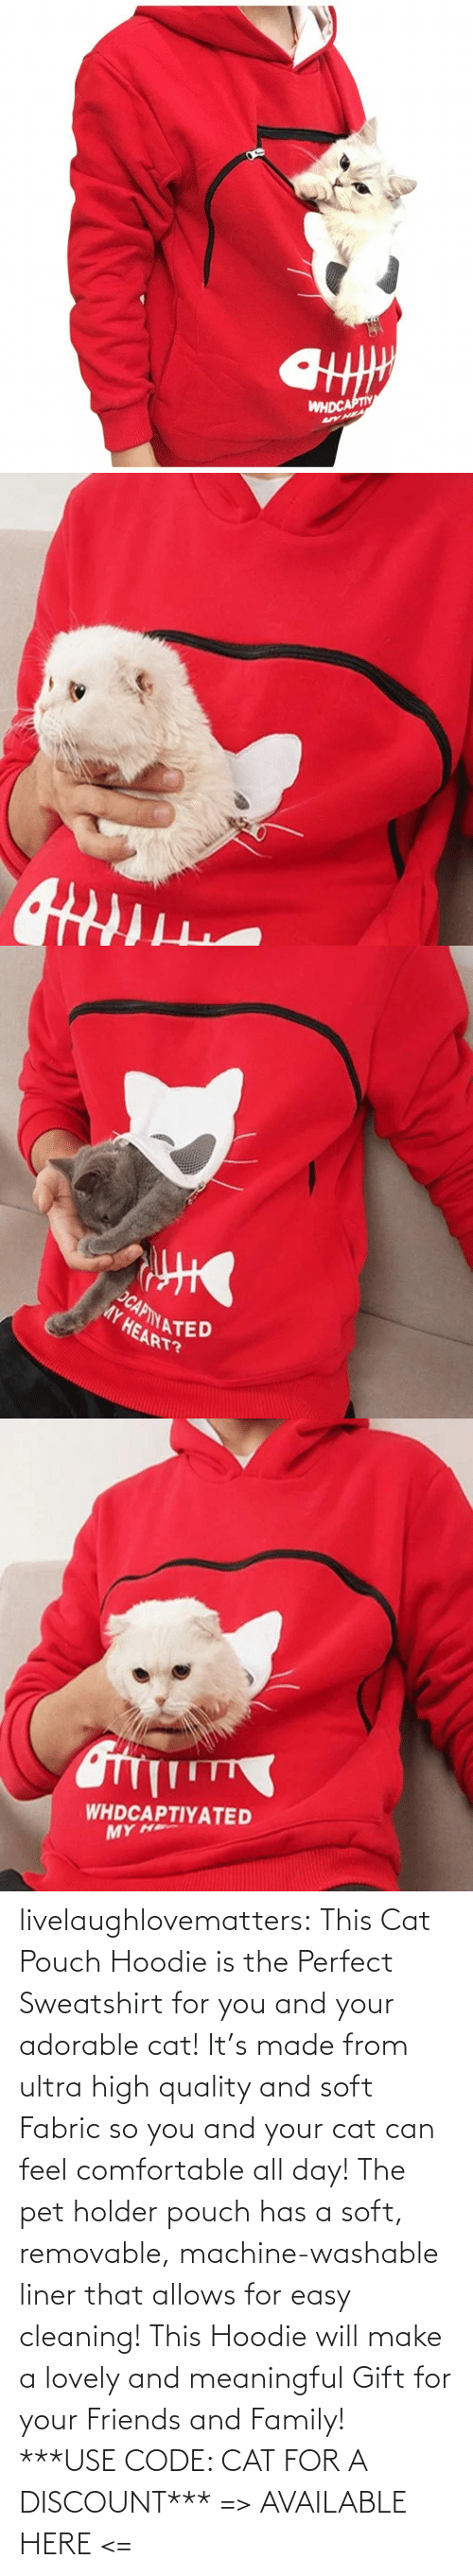 comfortable: livelaughlovematters: This Cat Pouch Hoodie is the Perfect Sweatshirt for you and your adorable cat! It's made from ultra high quality and soft Fabric so you and your cat can feel comfortable all day! The pet holder pouch has a soft, removable, machine-washable liner that allows for easy cleaning! This Hoodie will make a lovely and meaningful Gift for your Friends and Family!  ***USE CODE: CAT FOR A DISCOUNT*** => AVAILABLE HERE <=